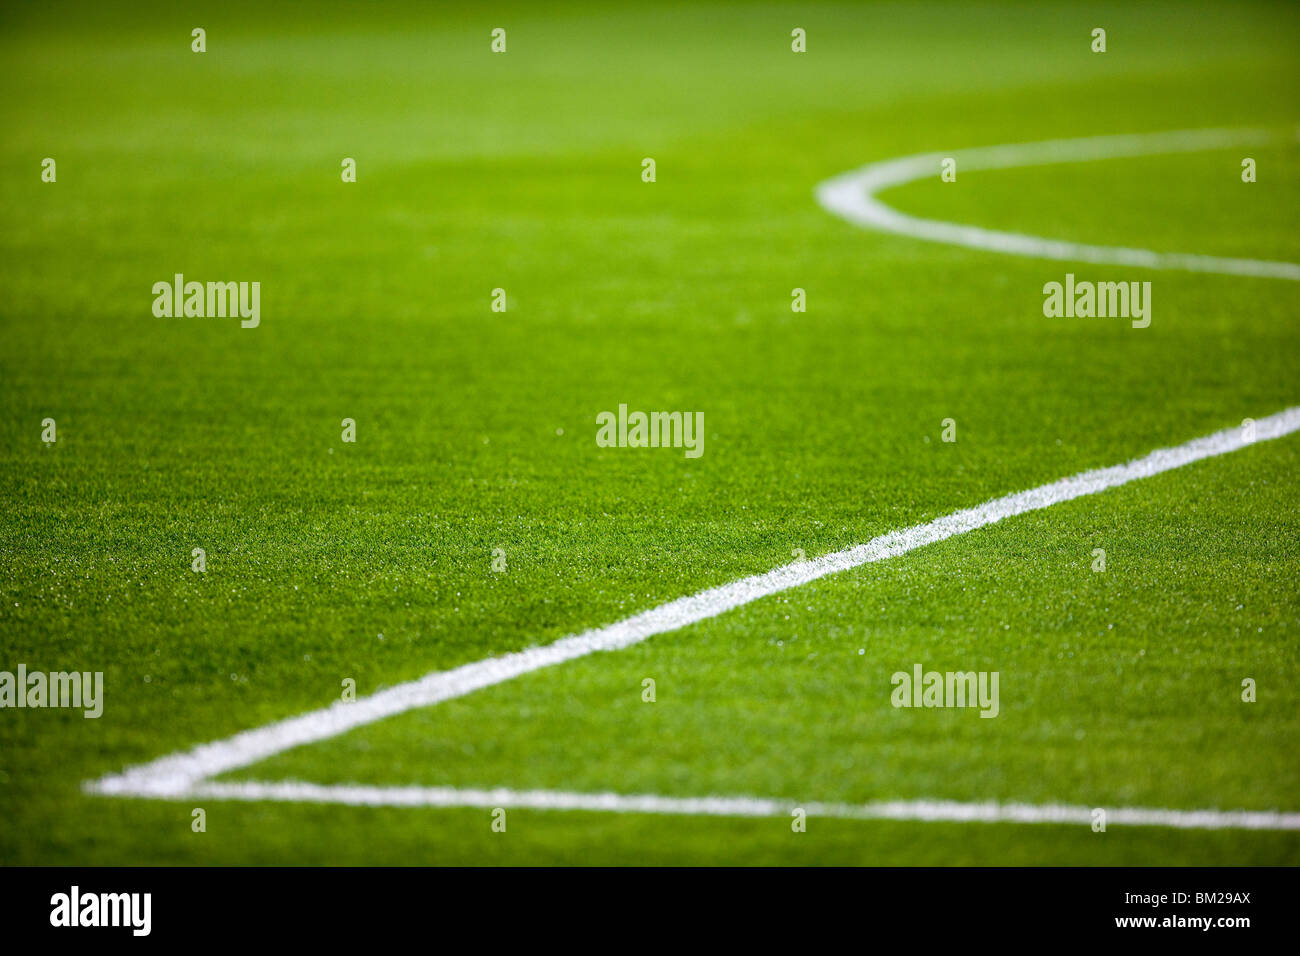 Lines of the penalty area of a football pitch, Seville, Spain - Stock Image